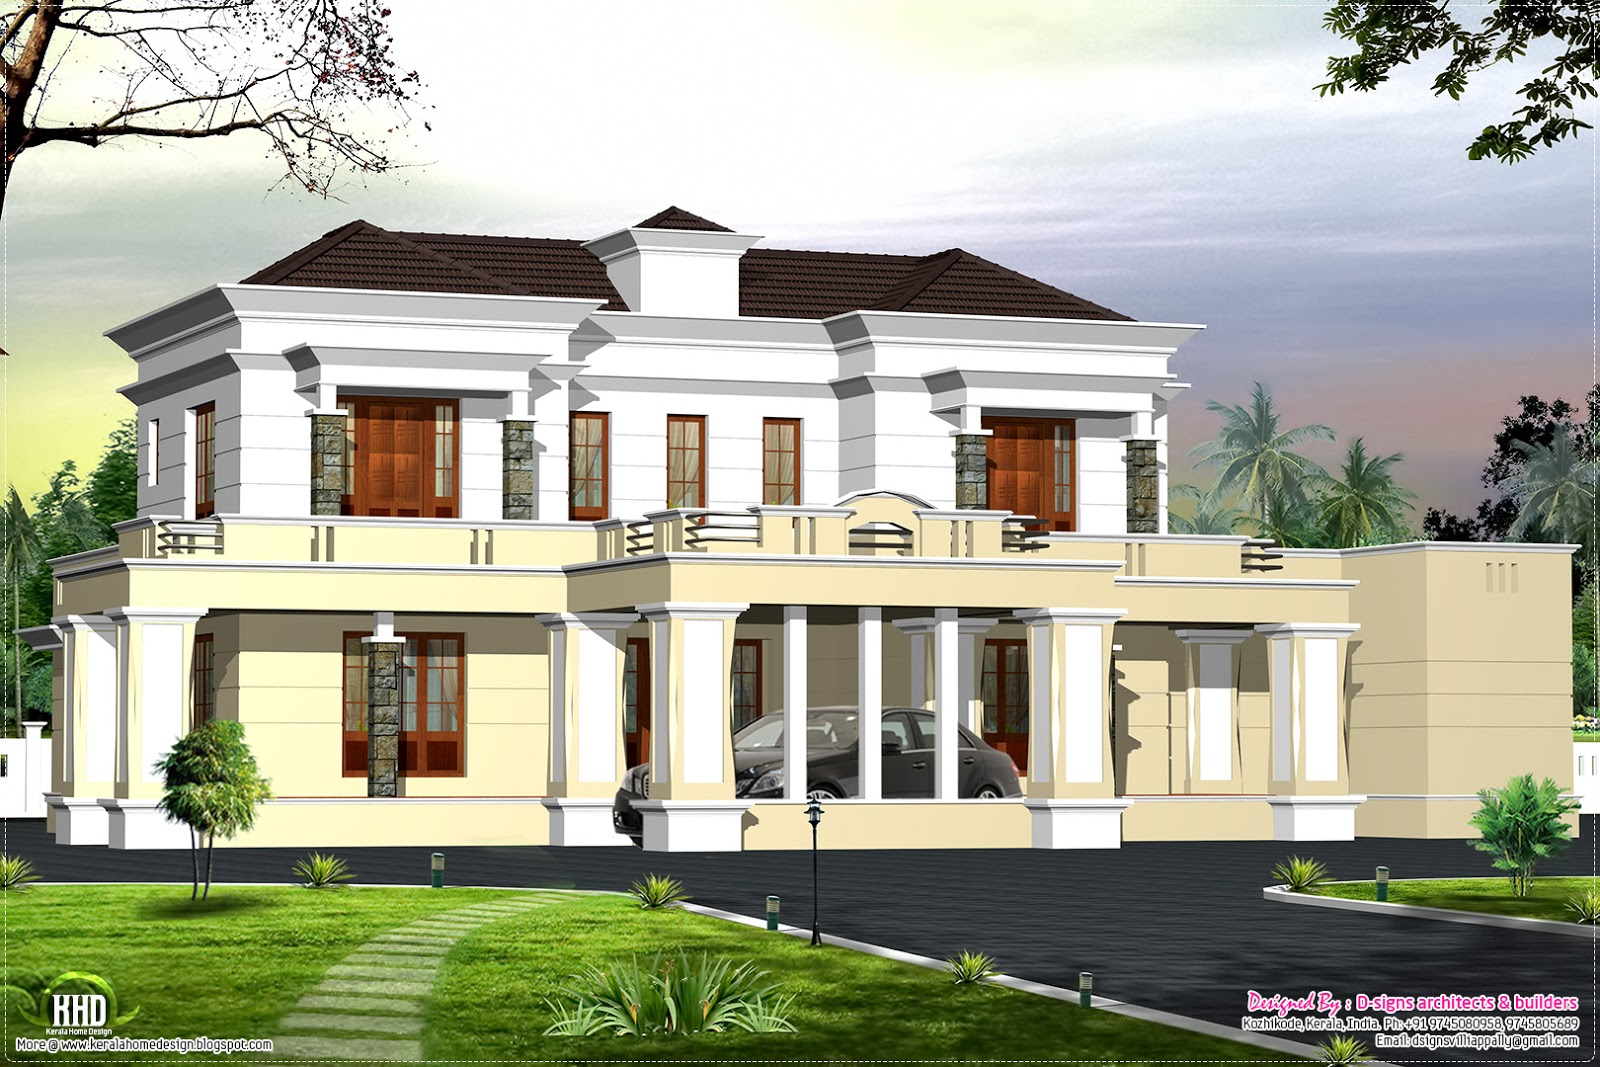 Victorian style luxury home design kerala home design for Victorian home designs